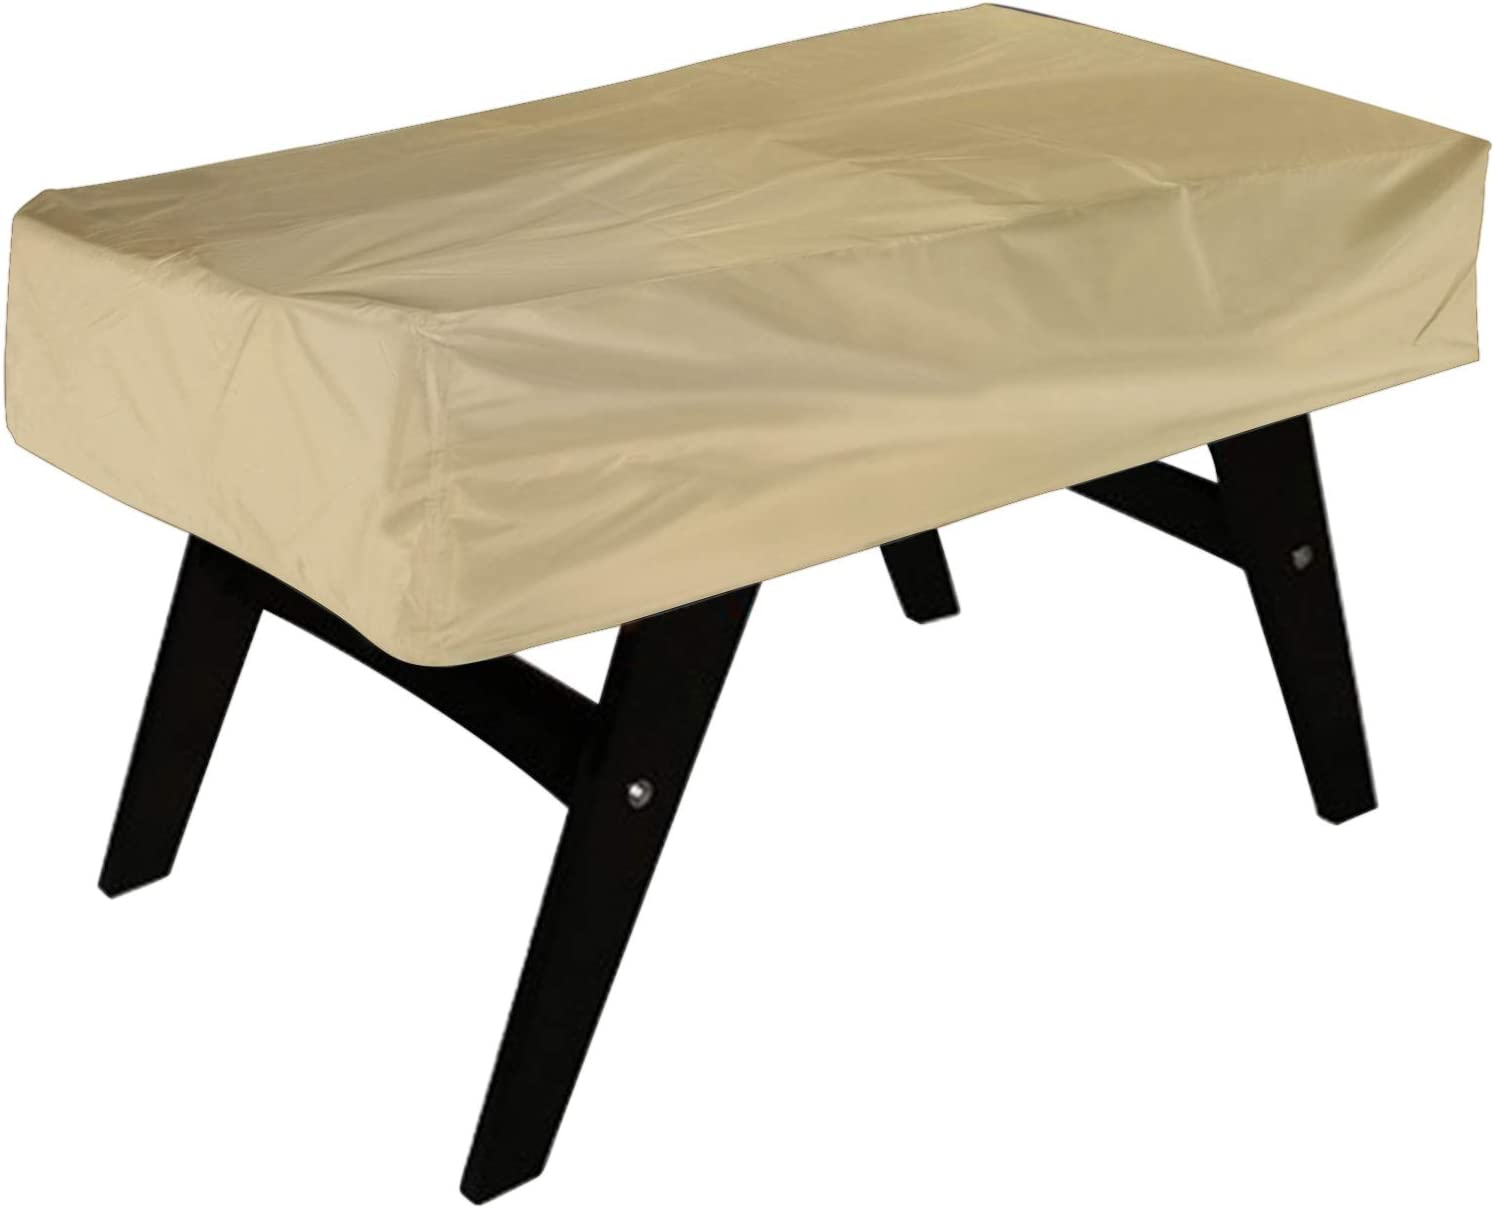 NEVERLAND Foosball Table Cover, Outdoor Waterproof Dust Rectangular Patio Coffee Chair Billiard Soccer Cover Beige 63 x 45 x 19.7inch